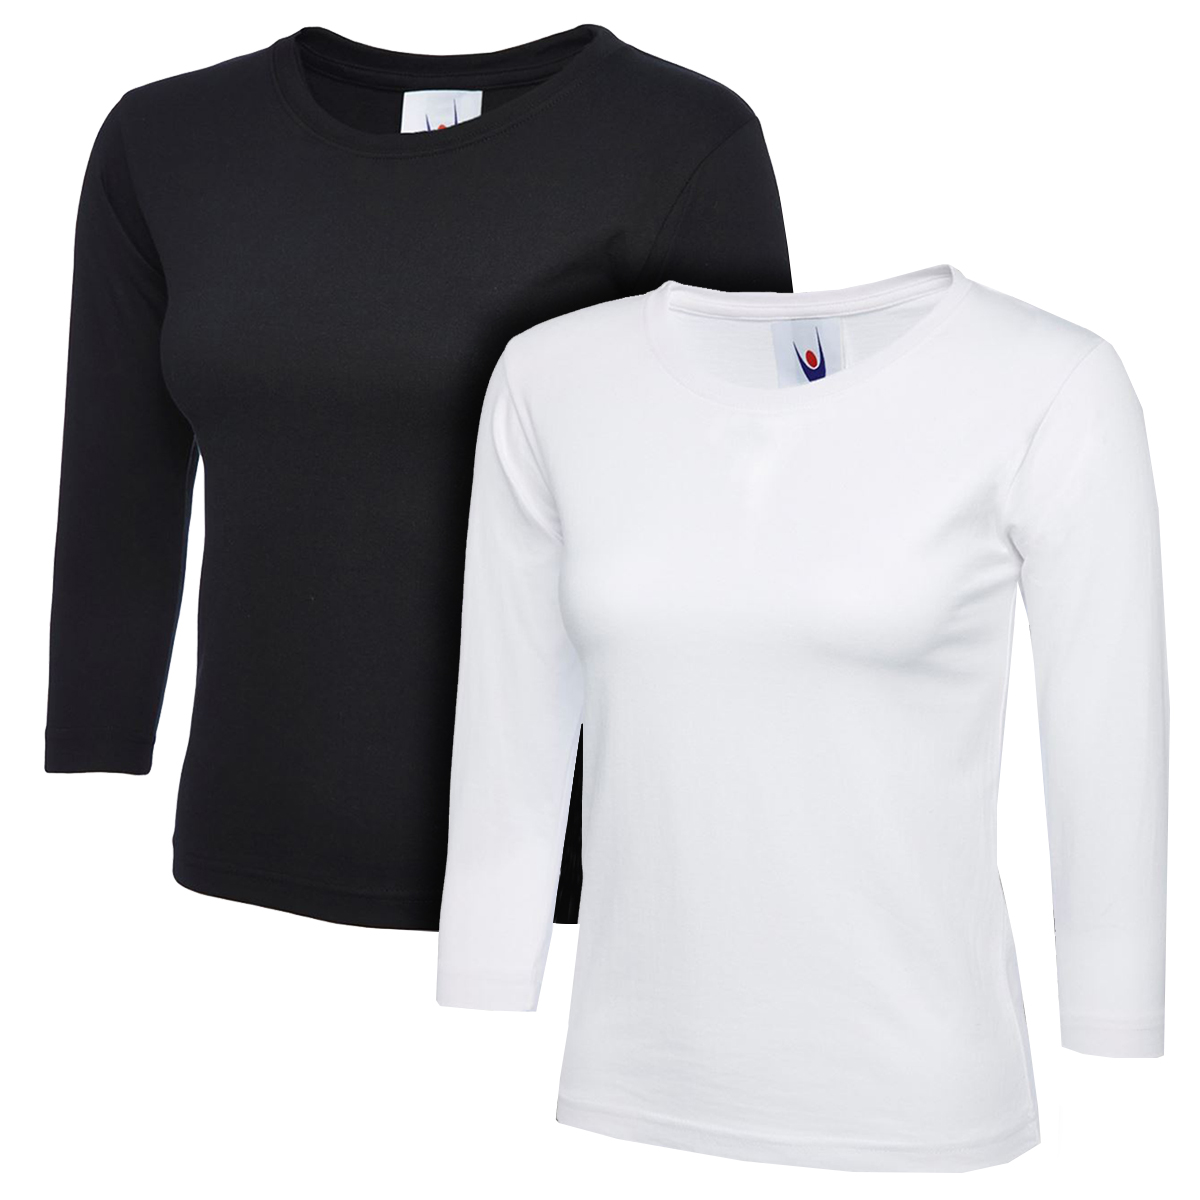 03bde73a Ladies Womens 3/4 Sleeve T-Shirt Top Plain Tee Casual Formal 2 Pack  Multibuy New